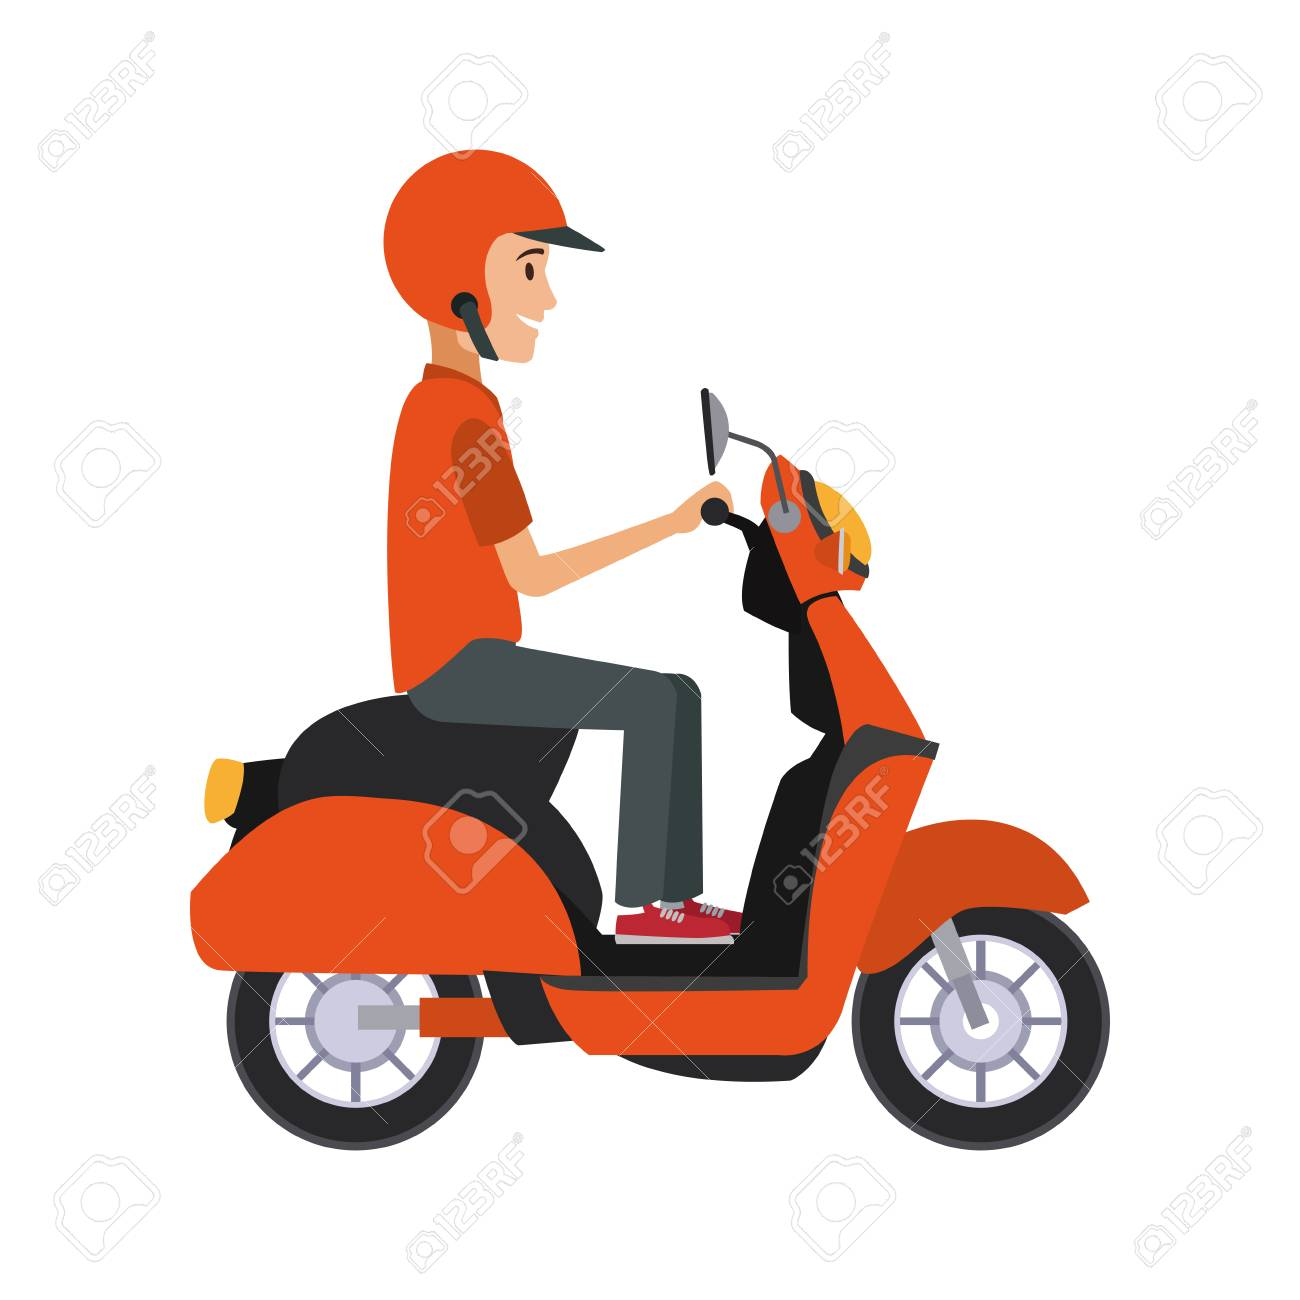 man driving scooter vector illustration graphic design royalty free cliparts vectors and stock illustration image 100464712 man driving scooter vector illustration graphic design